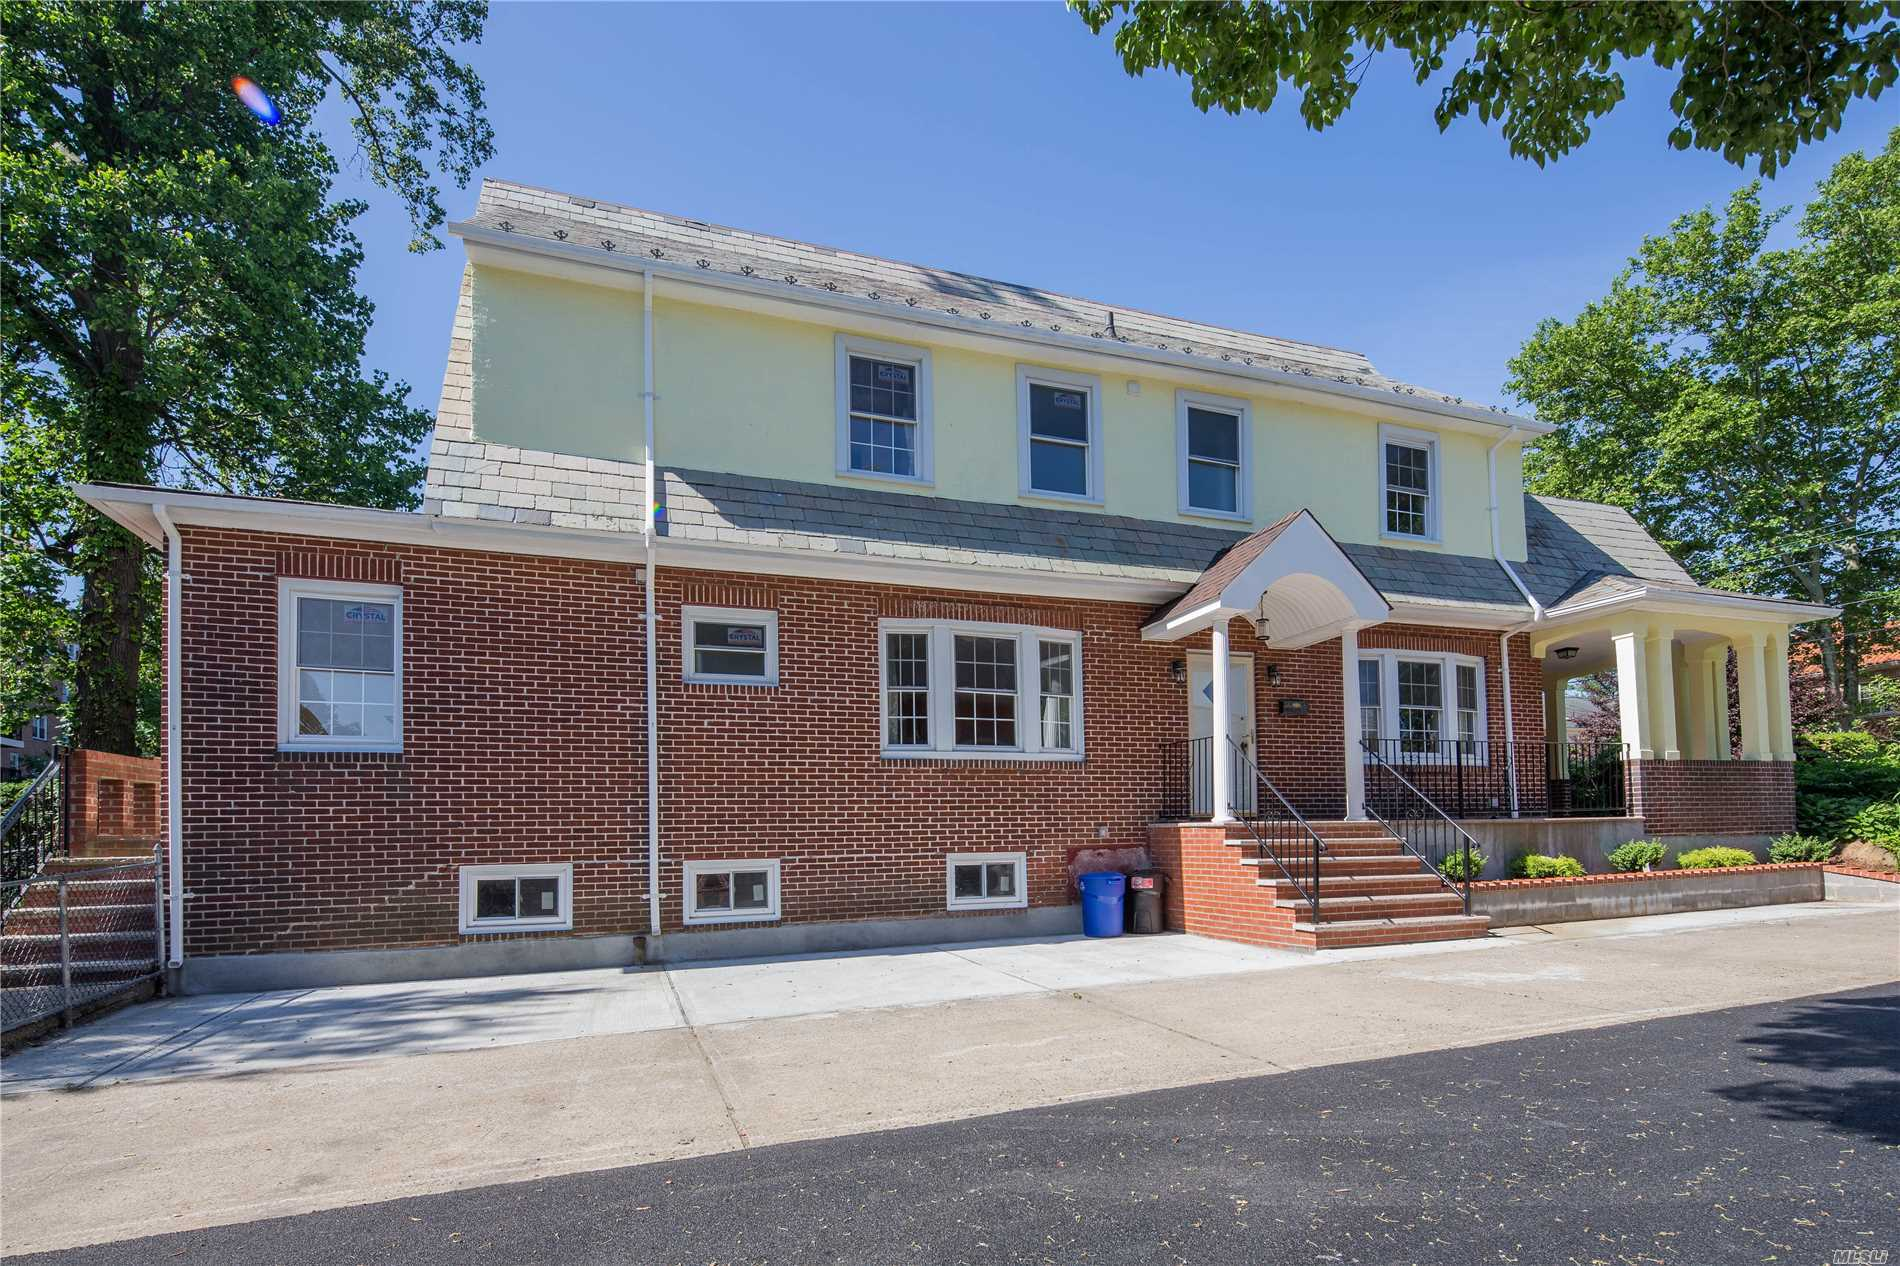 Detached Beautiful Center Hall Colonial.Totally New Renovated,Brand New Floor & Kitchen,Update New Electric And All Windows. 5 Brs W/ Large Lr & Family Room,Real Wood Burnning Fp.Finished Basement W Laundry Room.